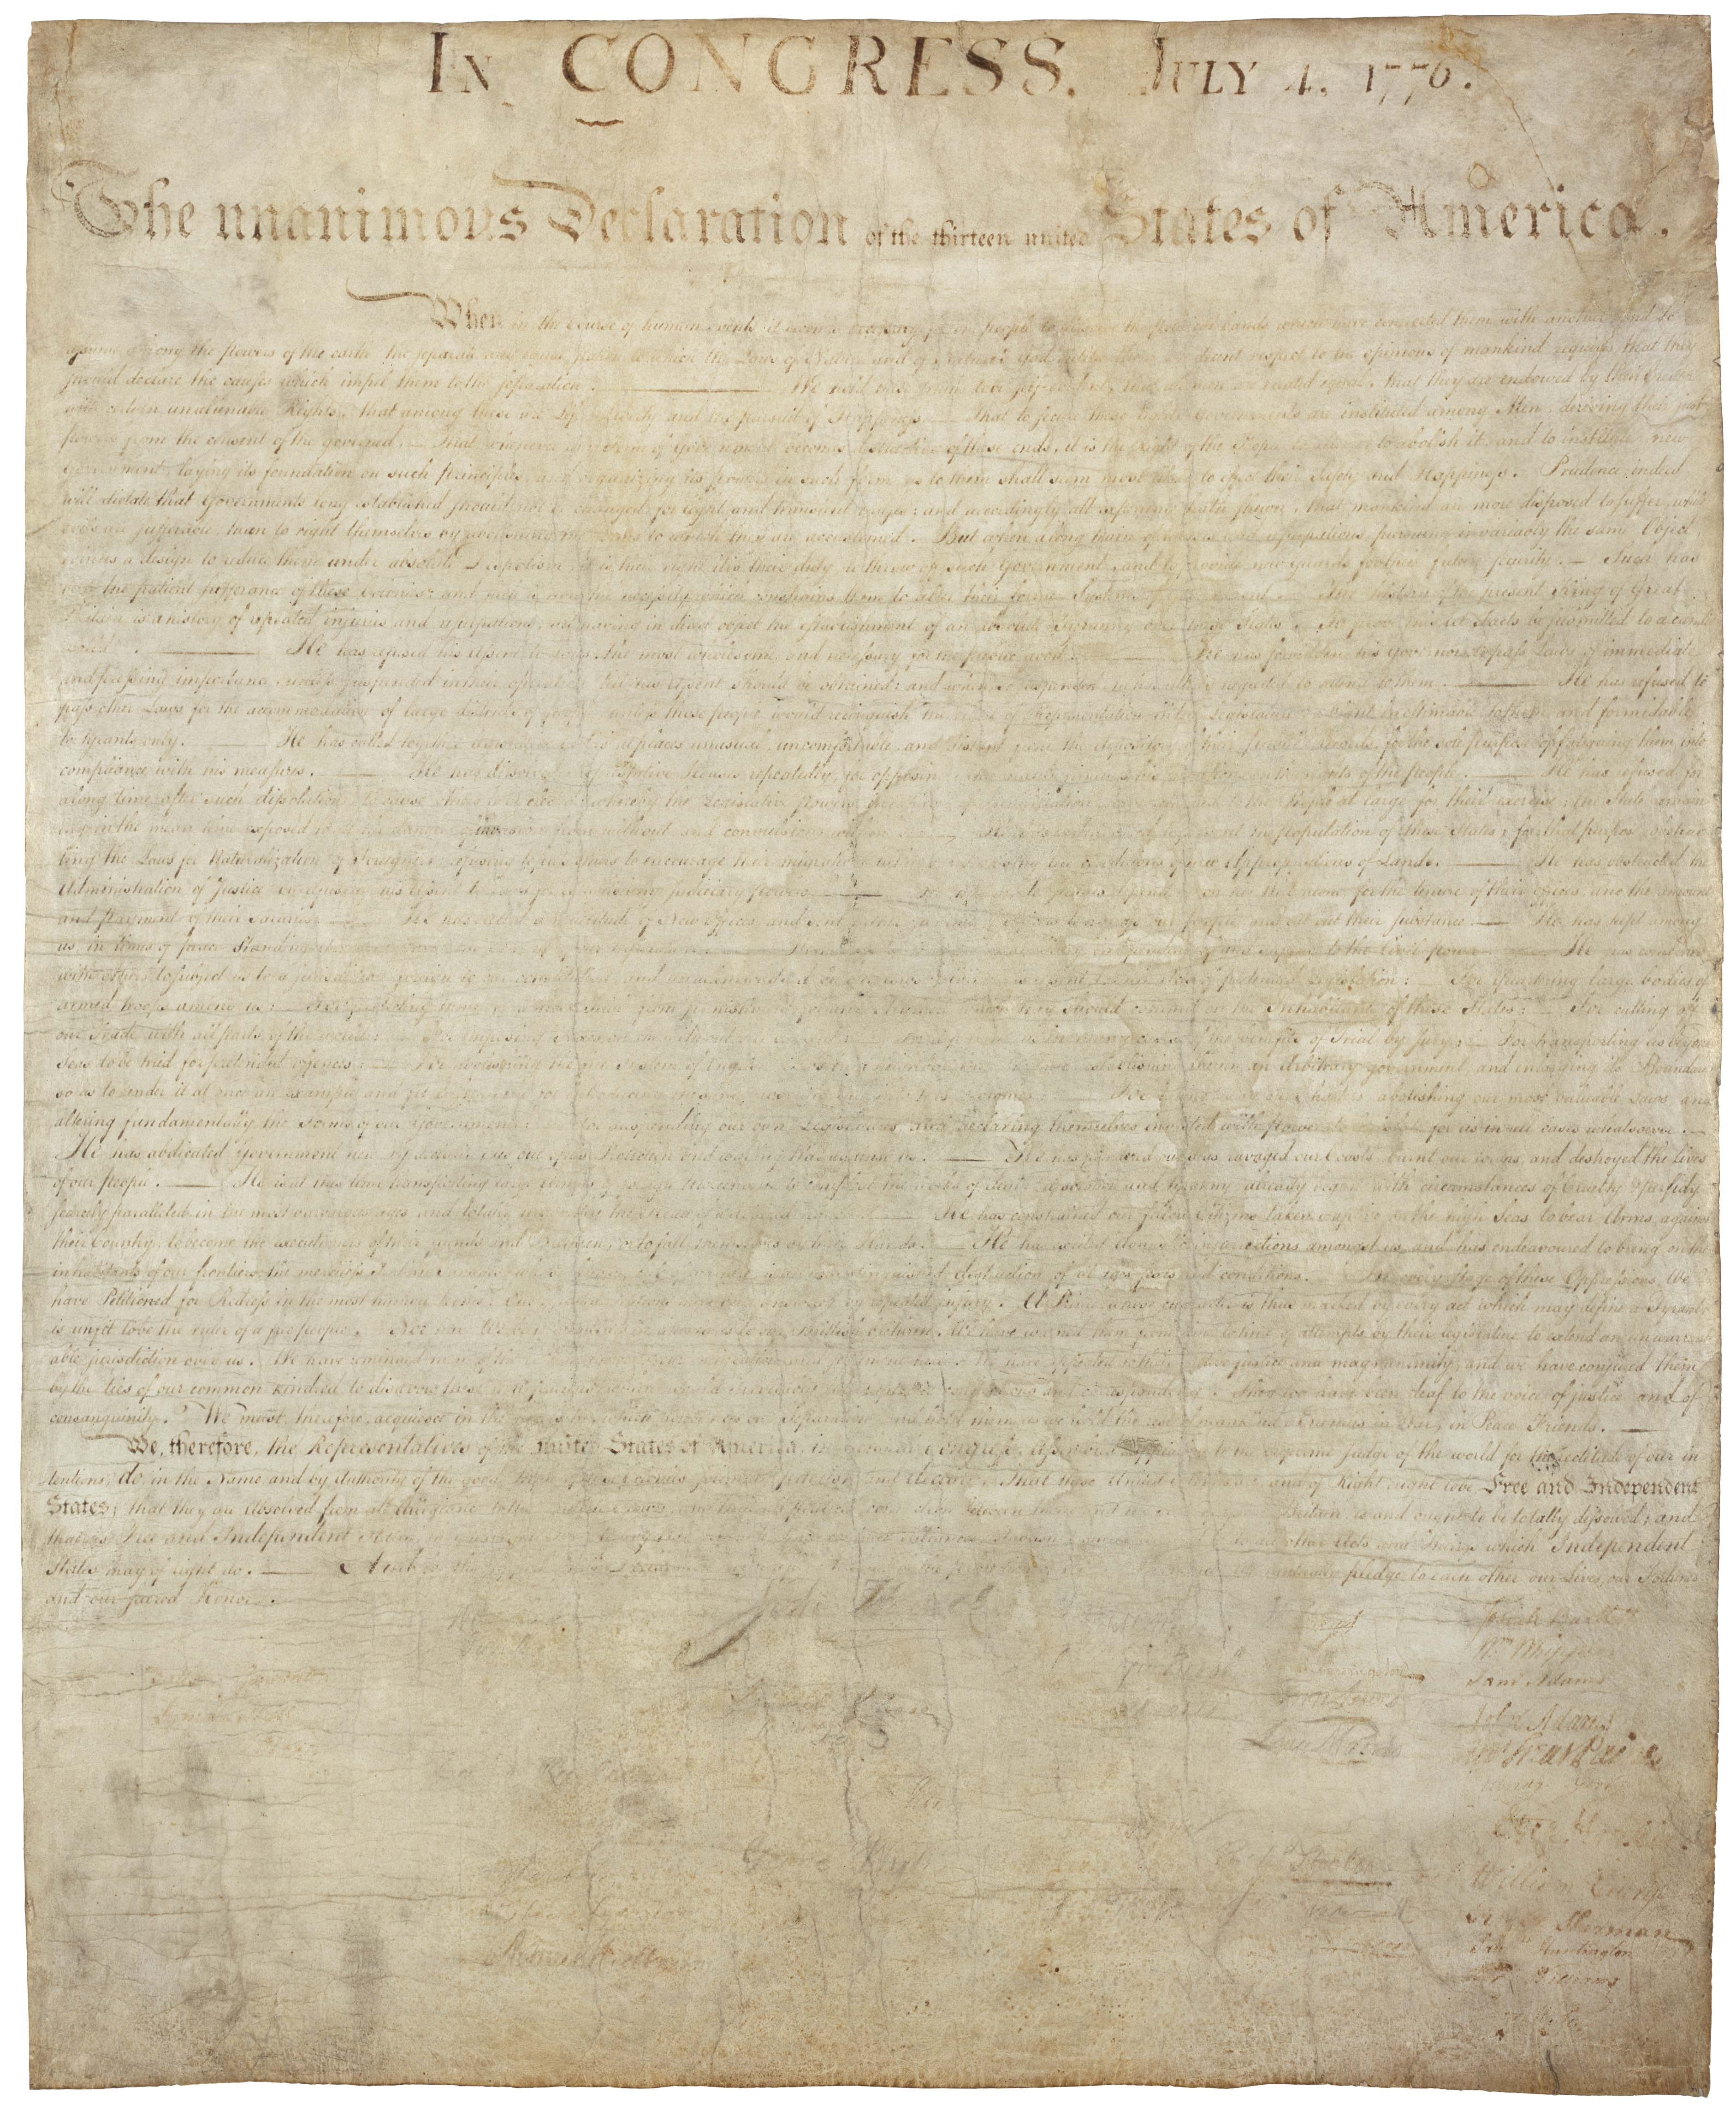 historicaldocuments:declaration_pg1of1_ac.jpg